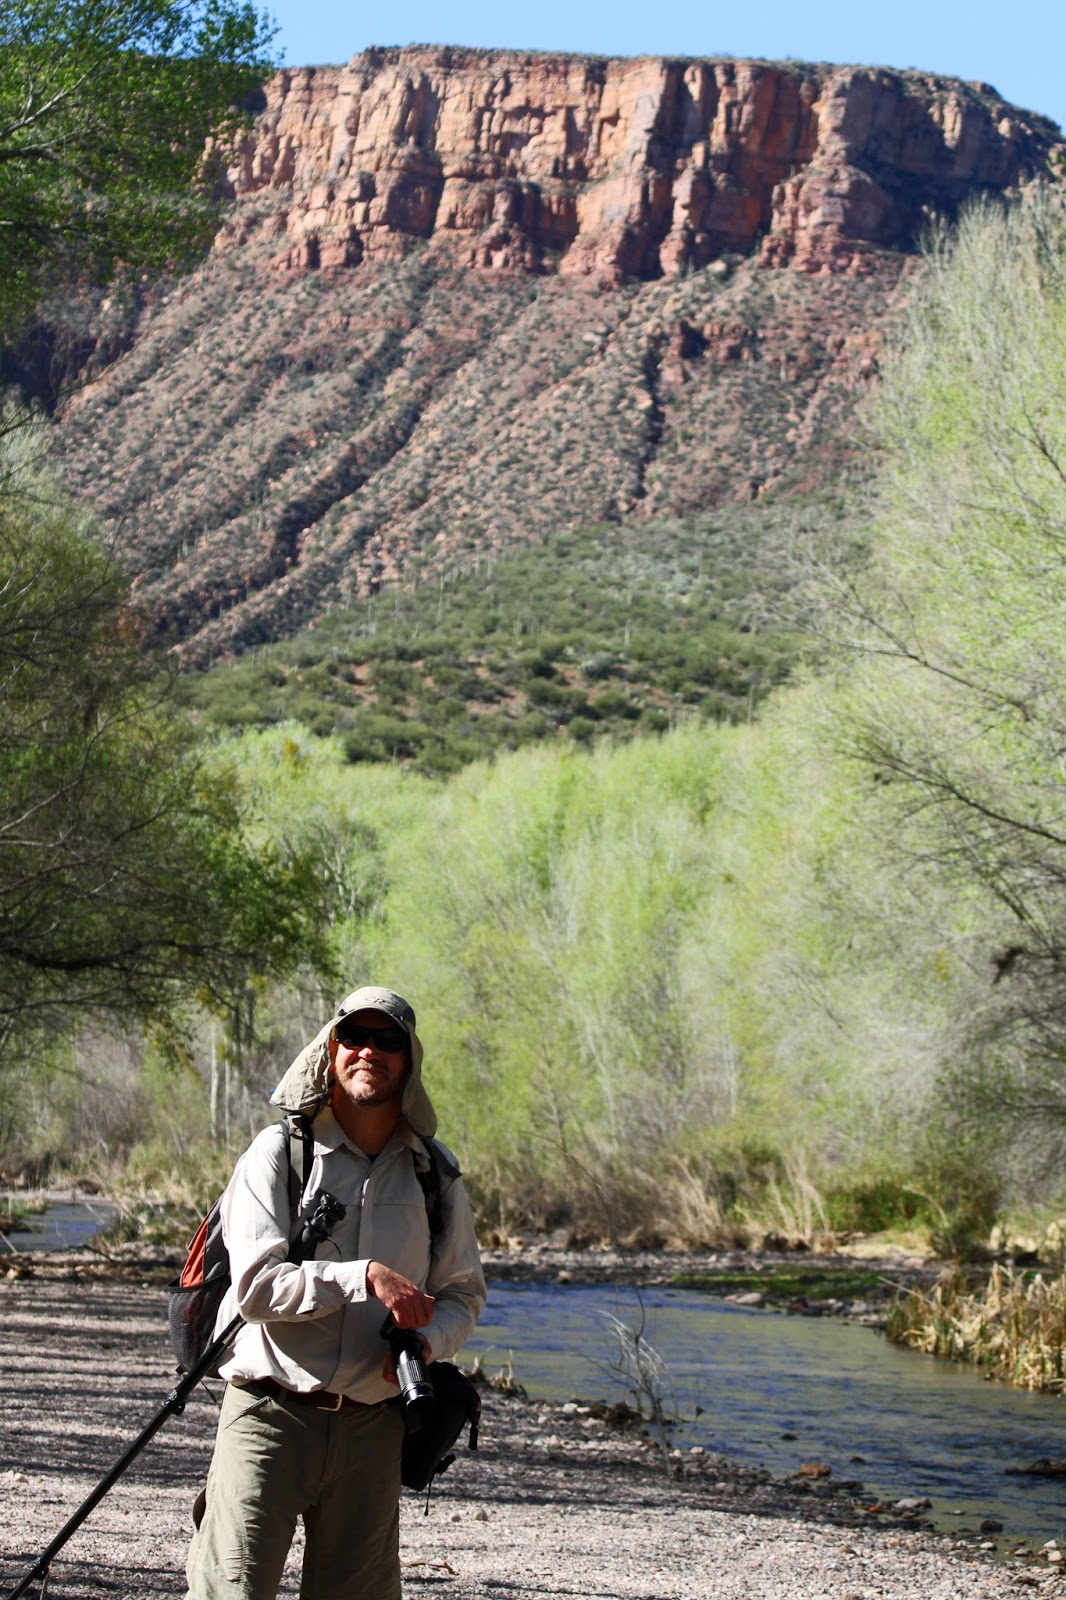 no limits aravaipa canyon a brief appearance by edward abbey this post will mainly be photos videos but a recent article on the nature conservancy in arizona highways 2016 gave me some new information i can